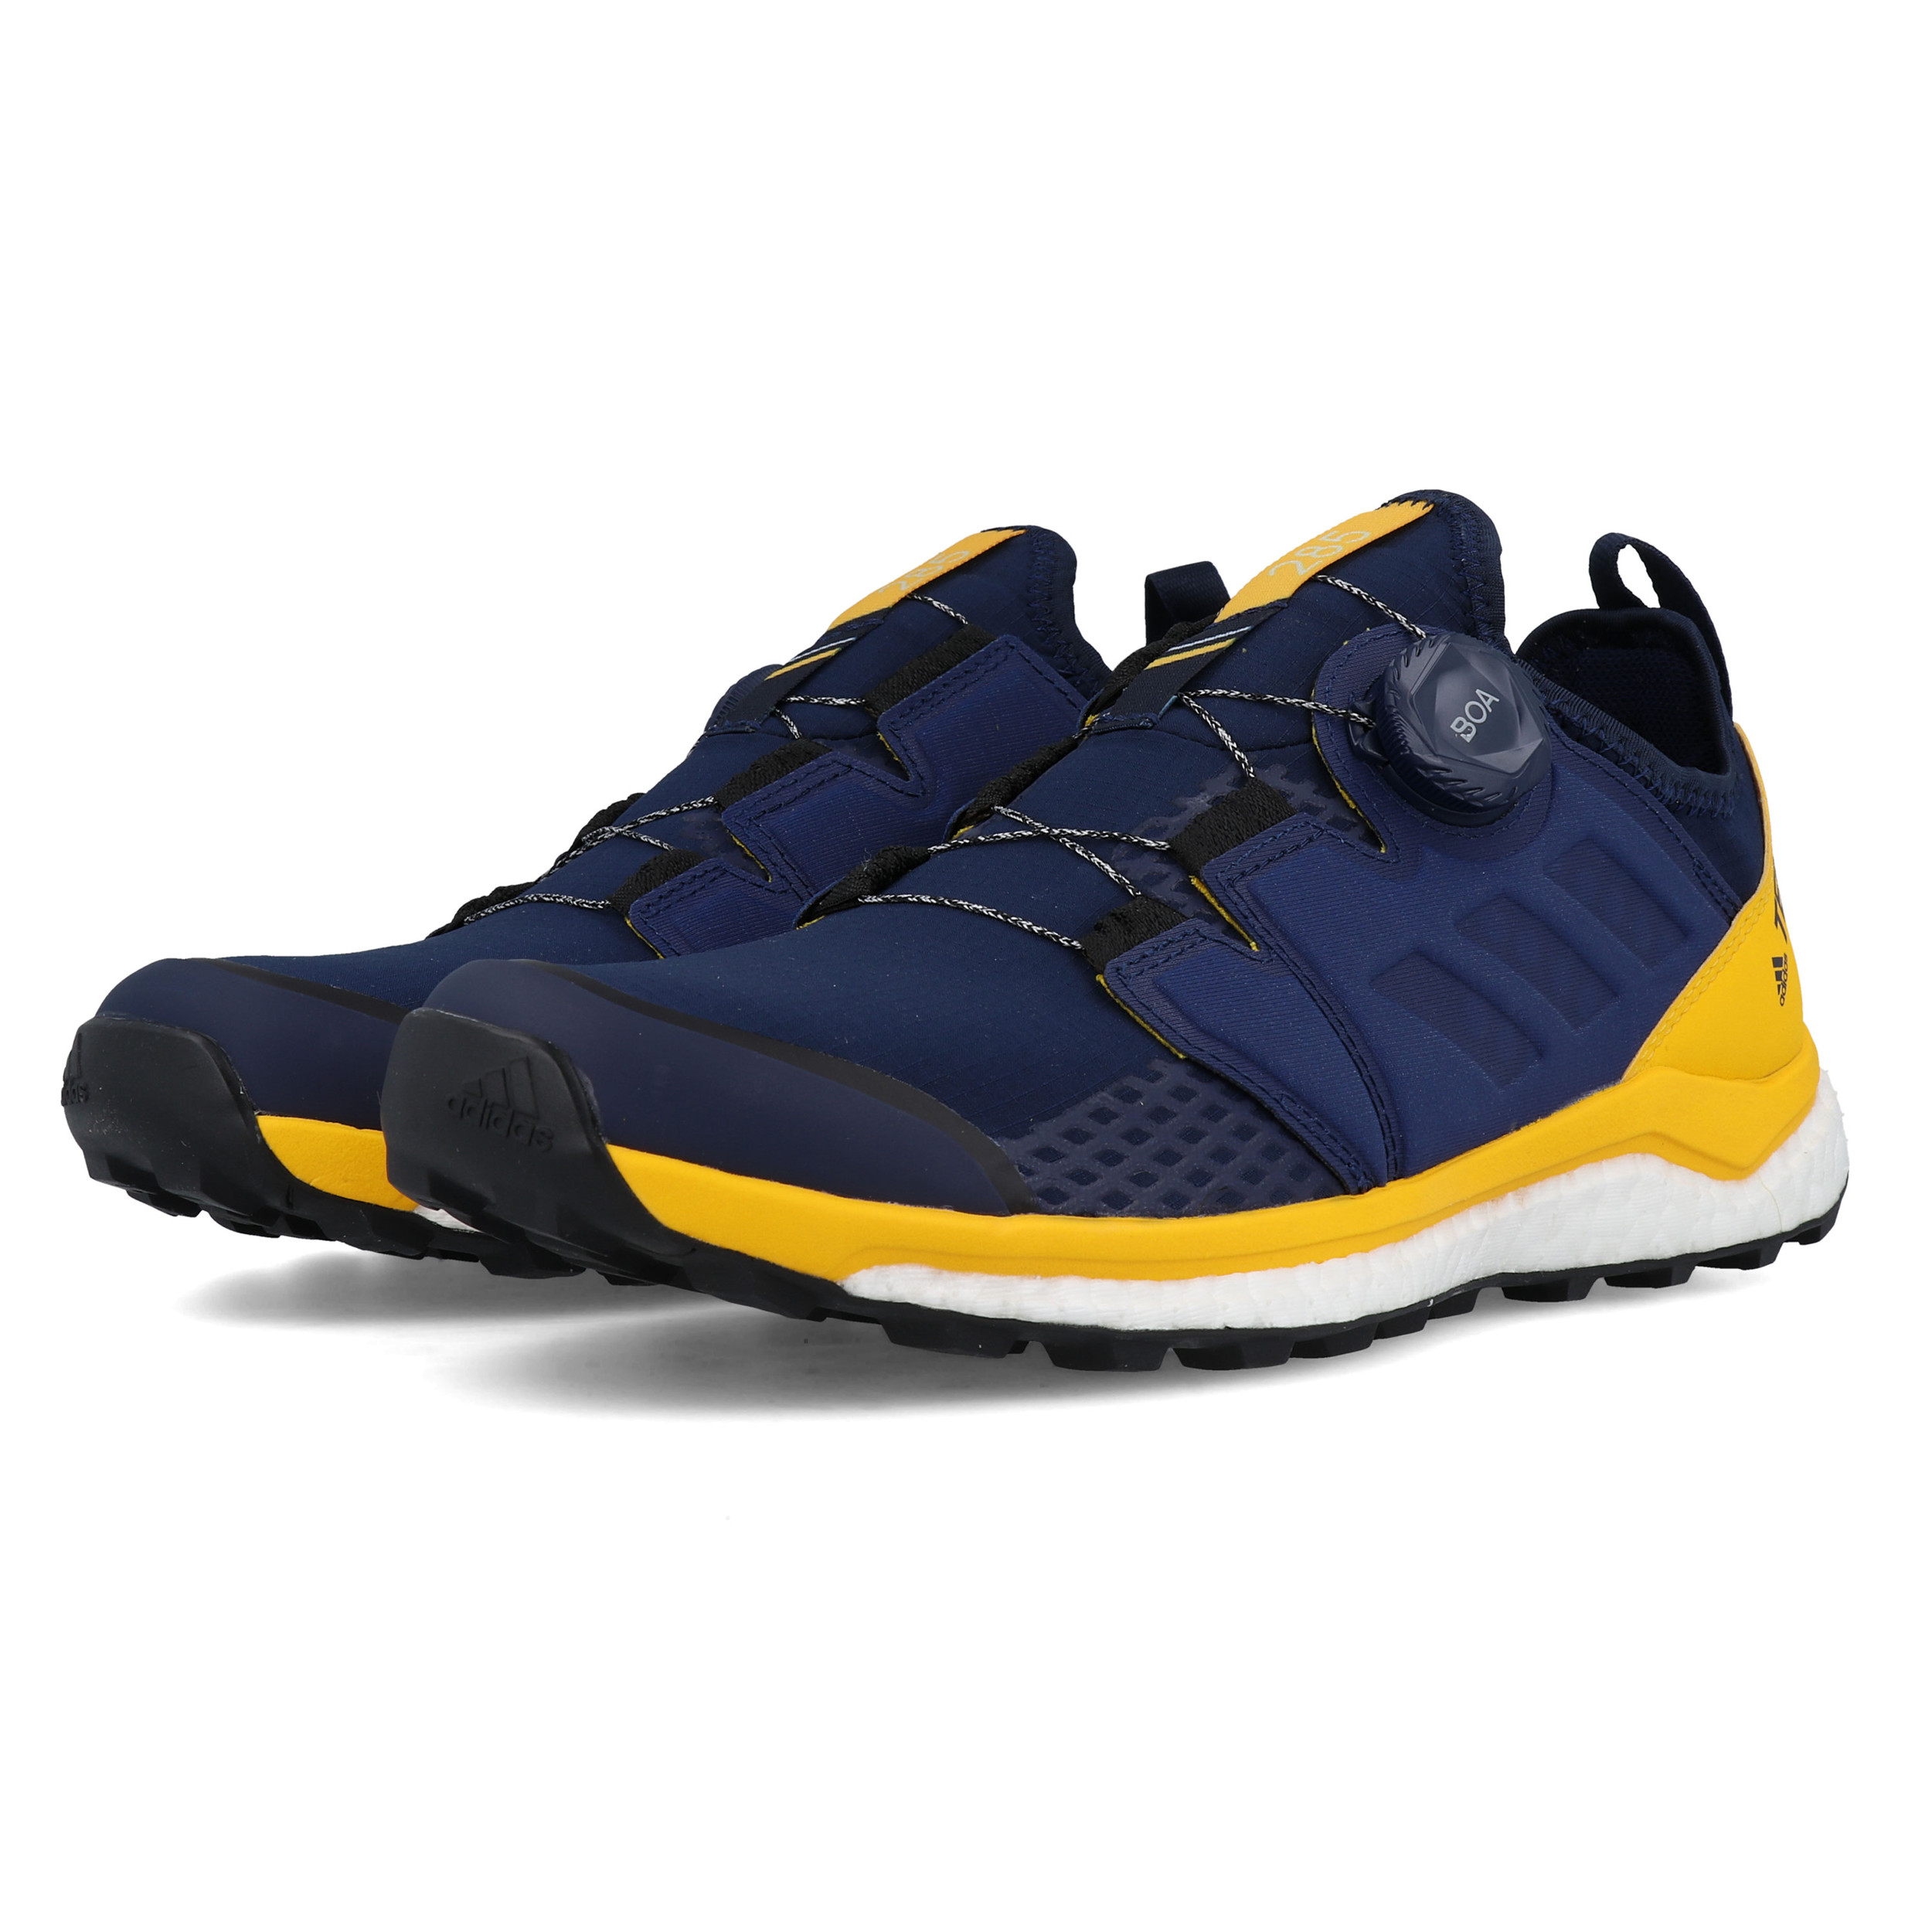 Details about adidas Mens Terrex Agravic Boa Trail Running Shoes Trainers Sneakers Blue Navy